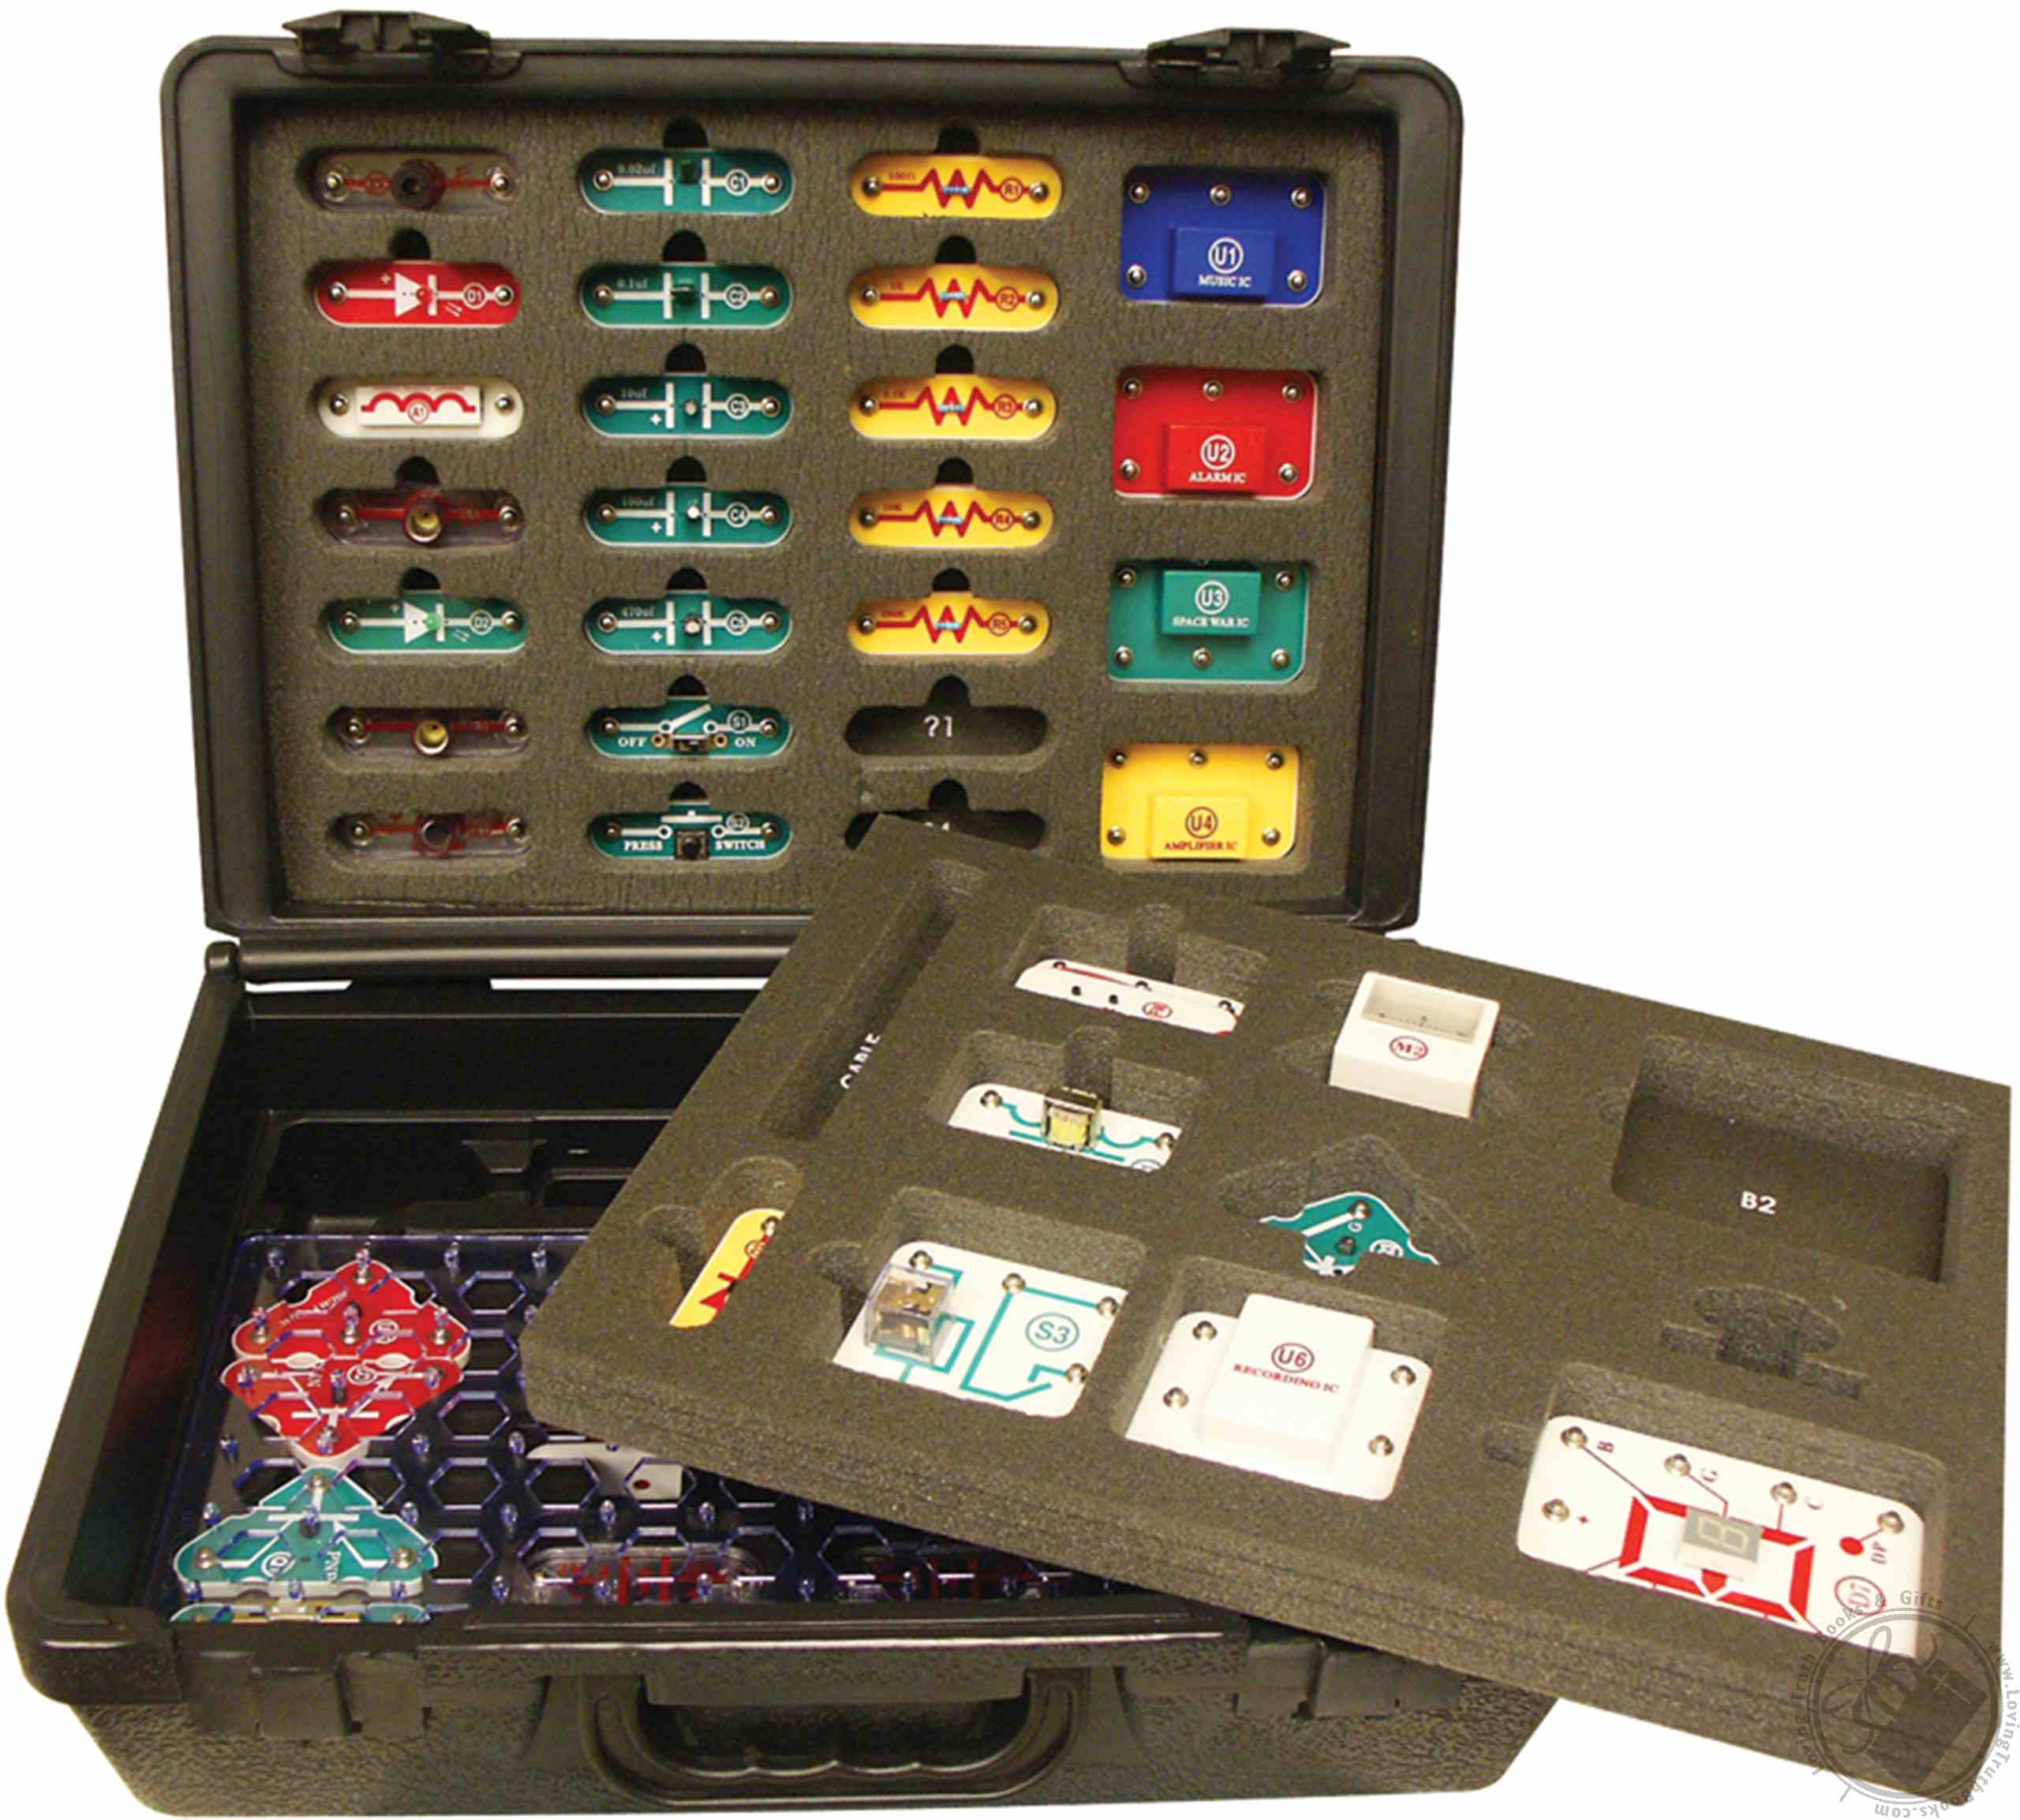 Snap Circuits Sc 500 R Student Training Program Includes Elenco Electronic Set Share With Others